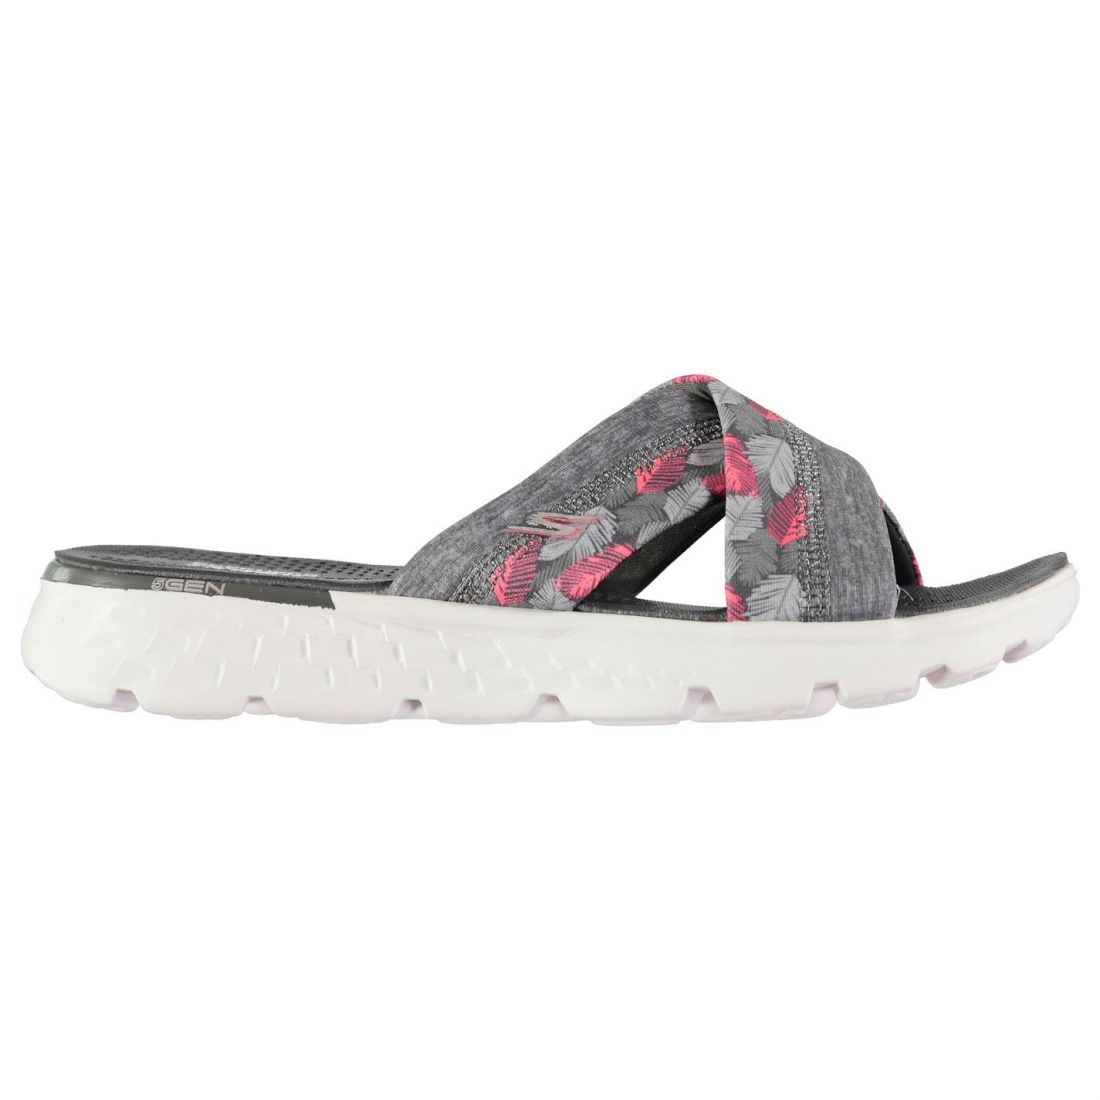 8346bc38c26 Details about Skechers Womens On The Go Tropical Flip Flops Slip  Lightweight Strap Open Toe